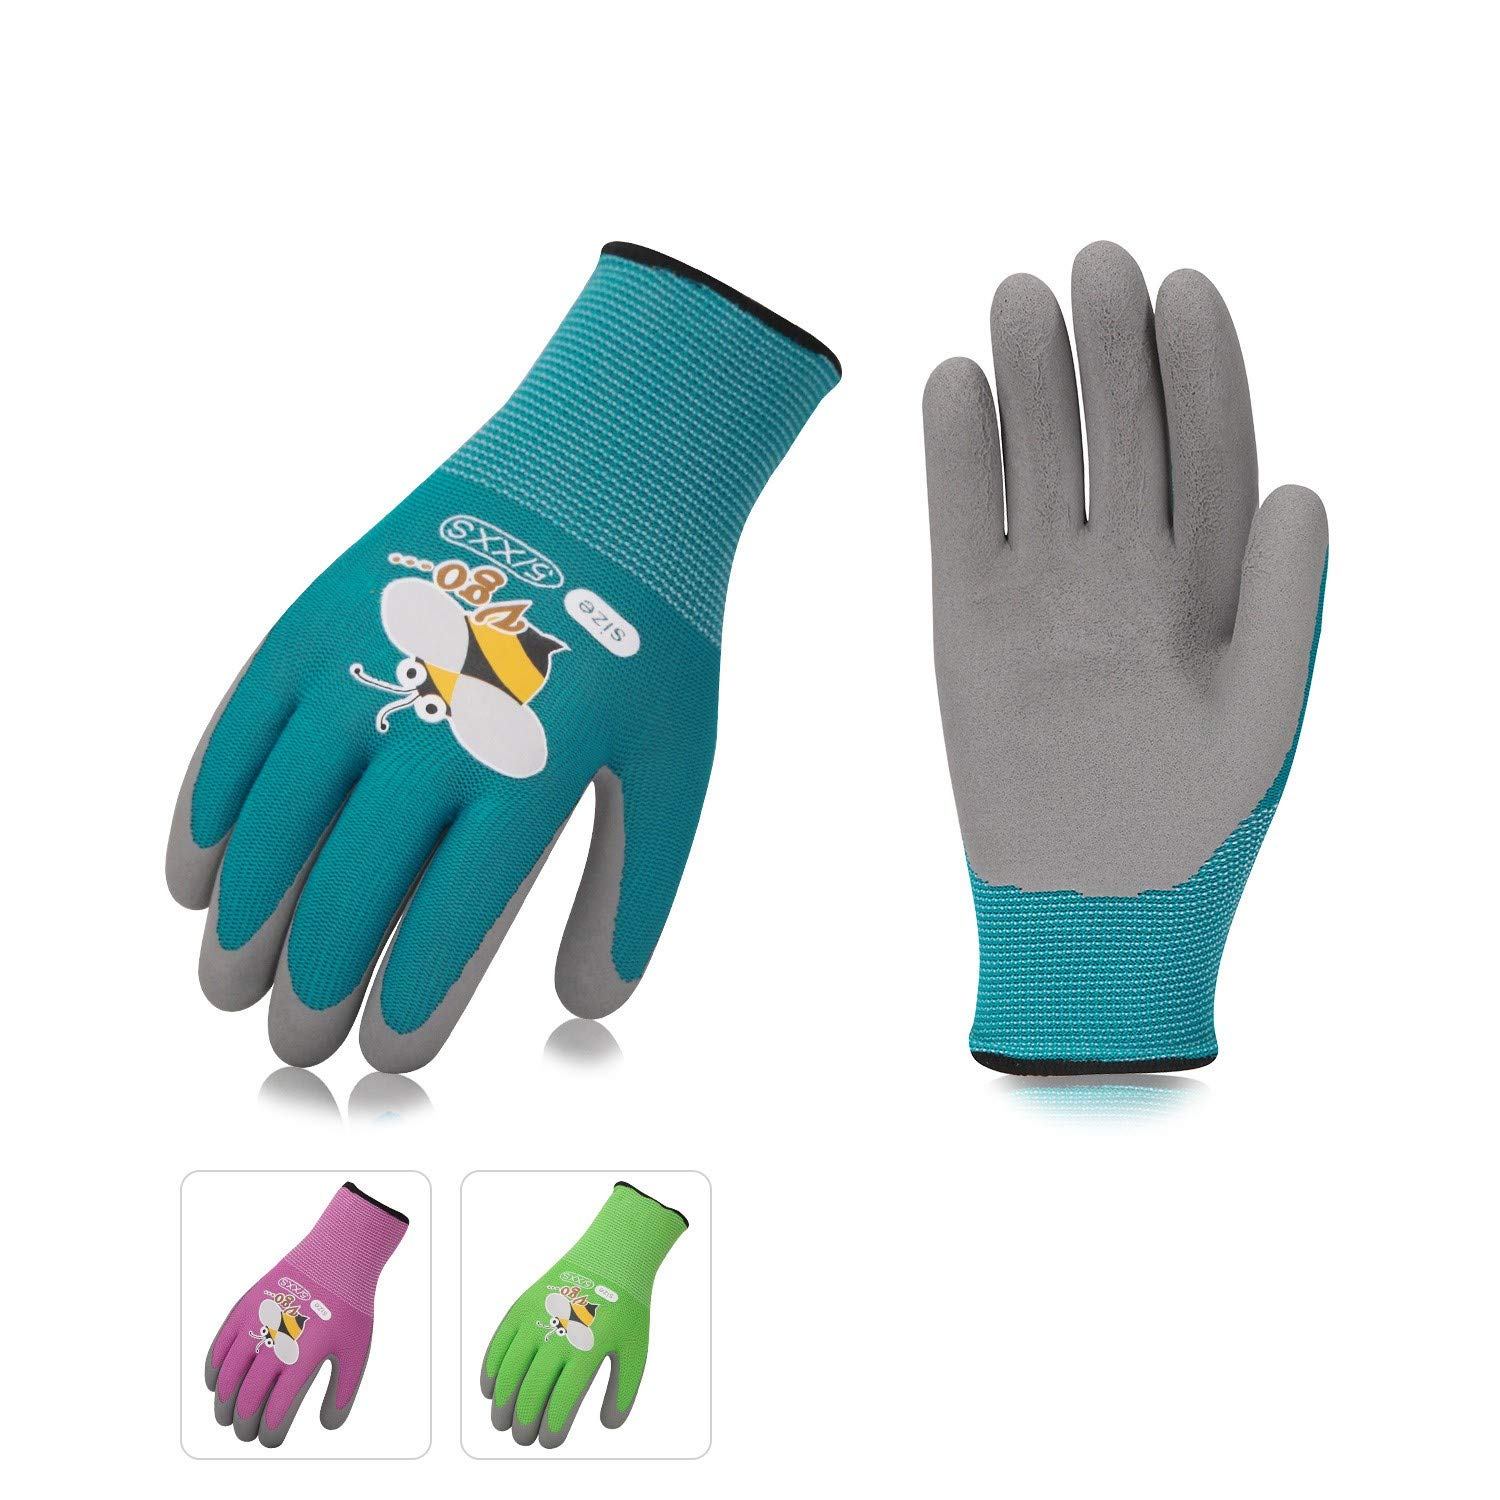 Vgo 3Pairs Age 5-7 Kids Gardening,Lawning,Working Gloves,Foam Rubber Coated(Size XXS,3 Colors,KID-RB6013)